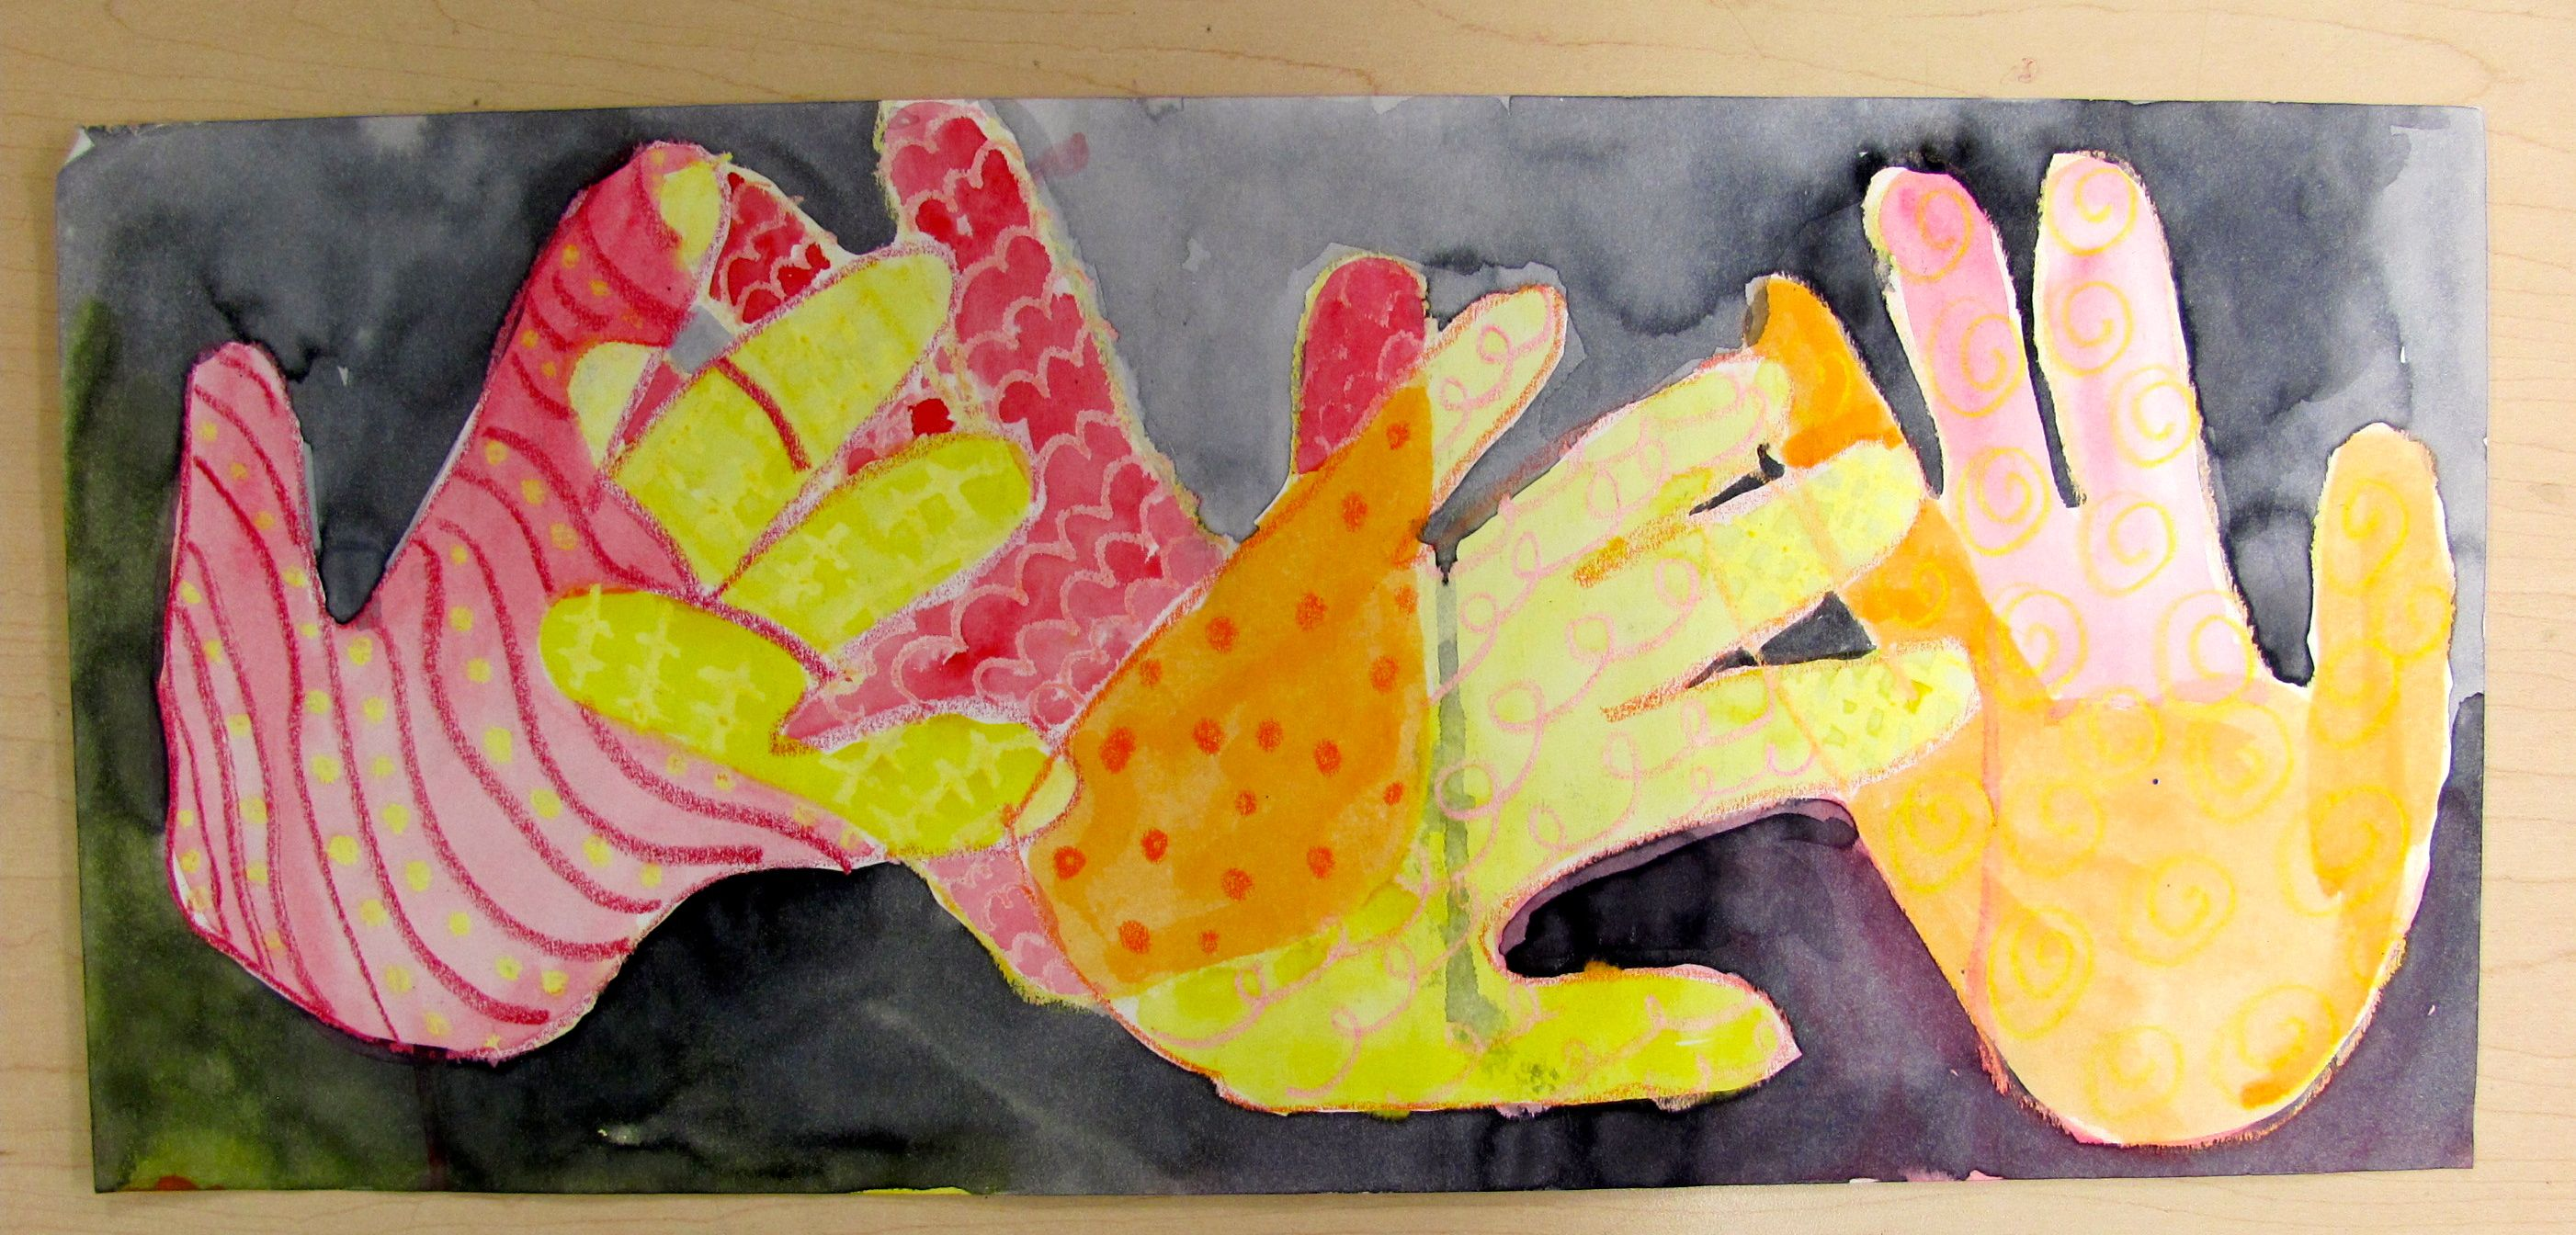 Grade 2 Hands and pattern. 8x18 paper warm colored crayons, liquid watercolor.